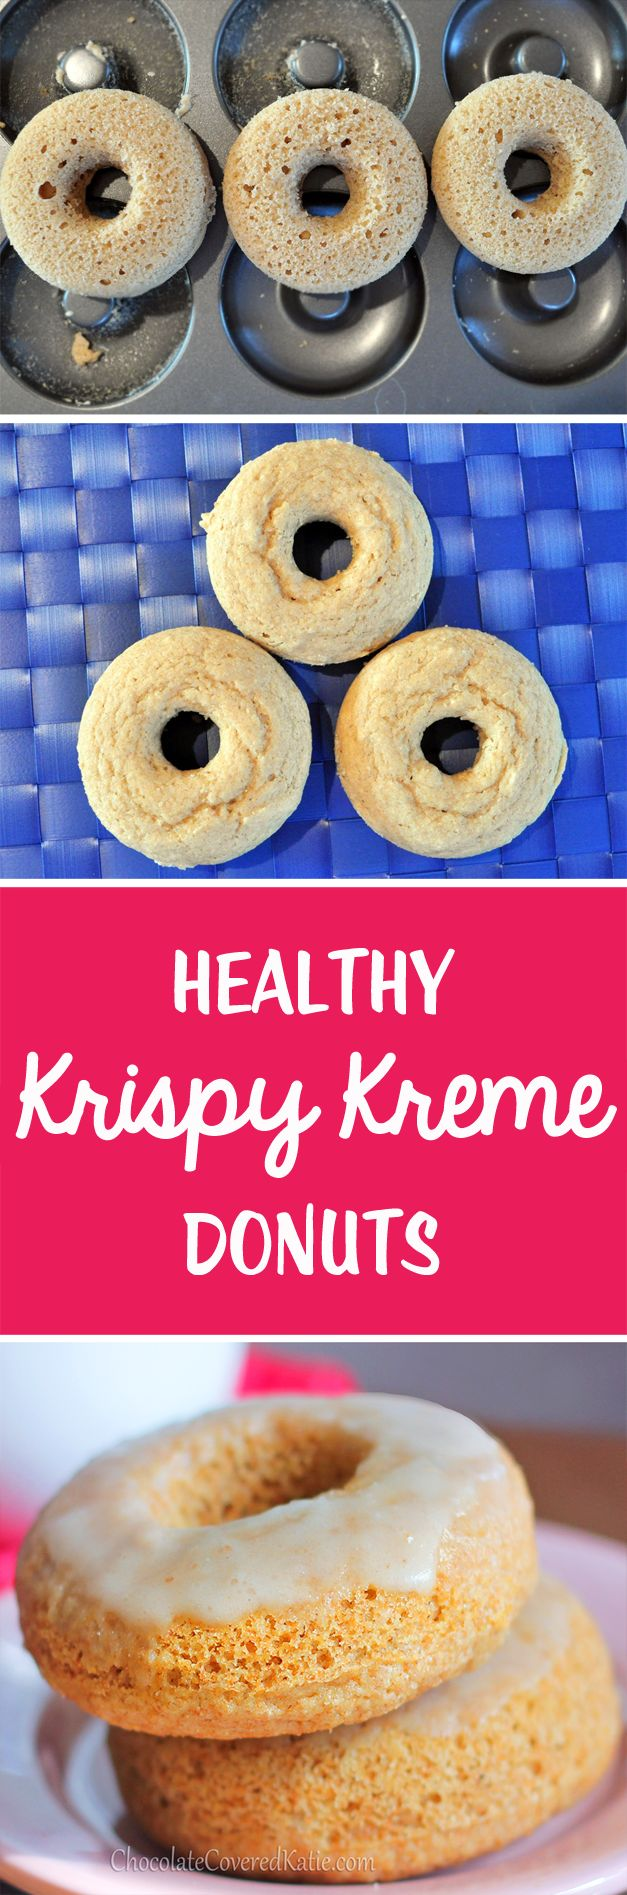 Healthy Krispy Kreme Donuts - 1 cup flour, 1 tsp vanilla extract, 1 1/2 tsp baking powder, 1/3 cup... Full recipe: http://chocolatecoveredkatie.com/2013/02/22/homemade-krispy-kreme-doughnuts-the-healthy-version/ @choccoveredkt